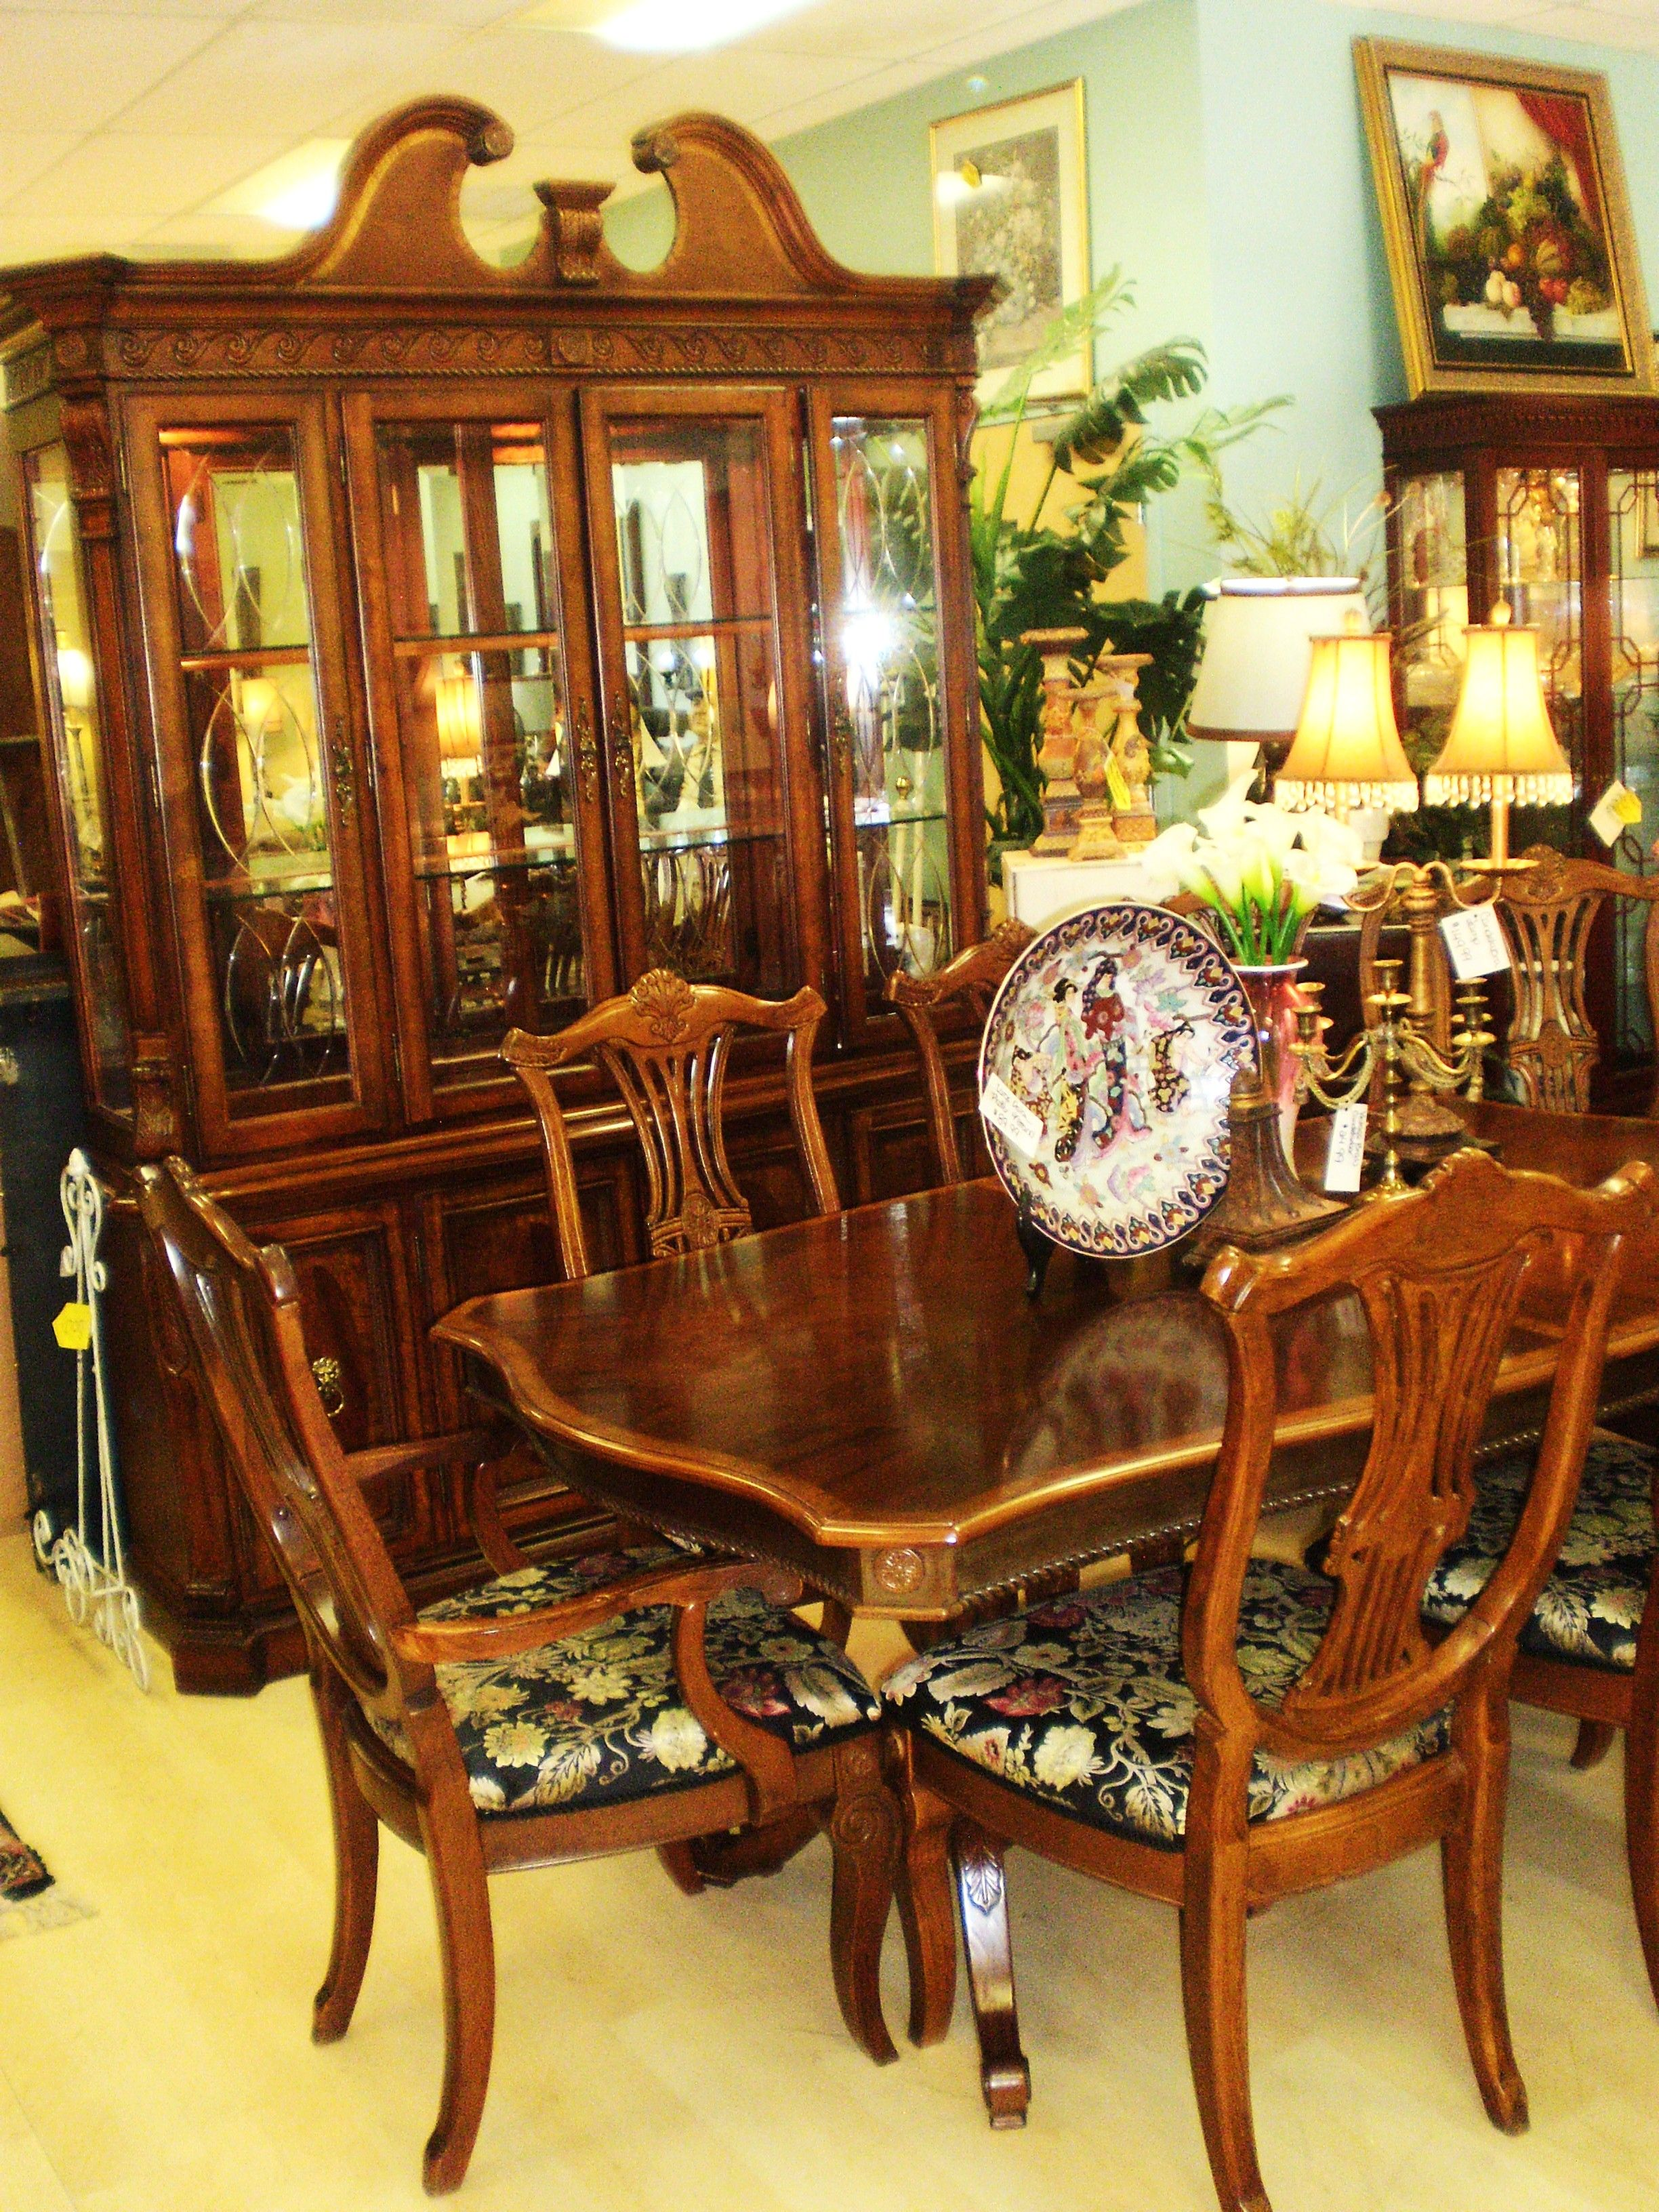 Chippendale Dining Room Table 2 Leaves 8 Chairs And China Amusing Dining Room Table For 2 Inspiration Design